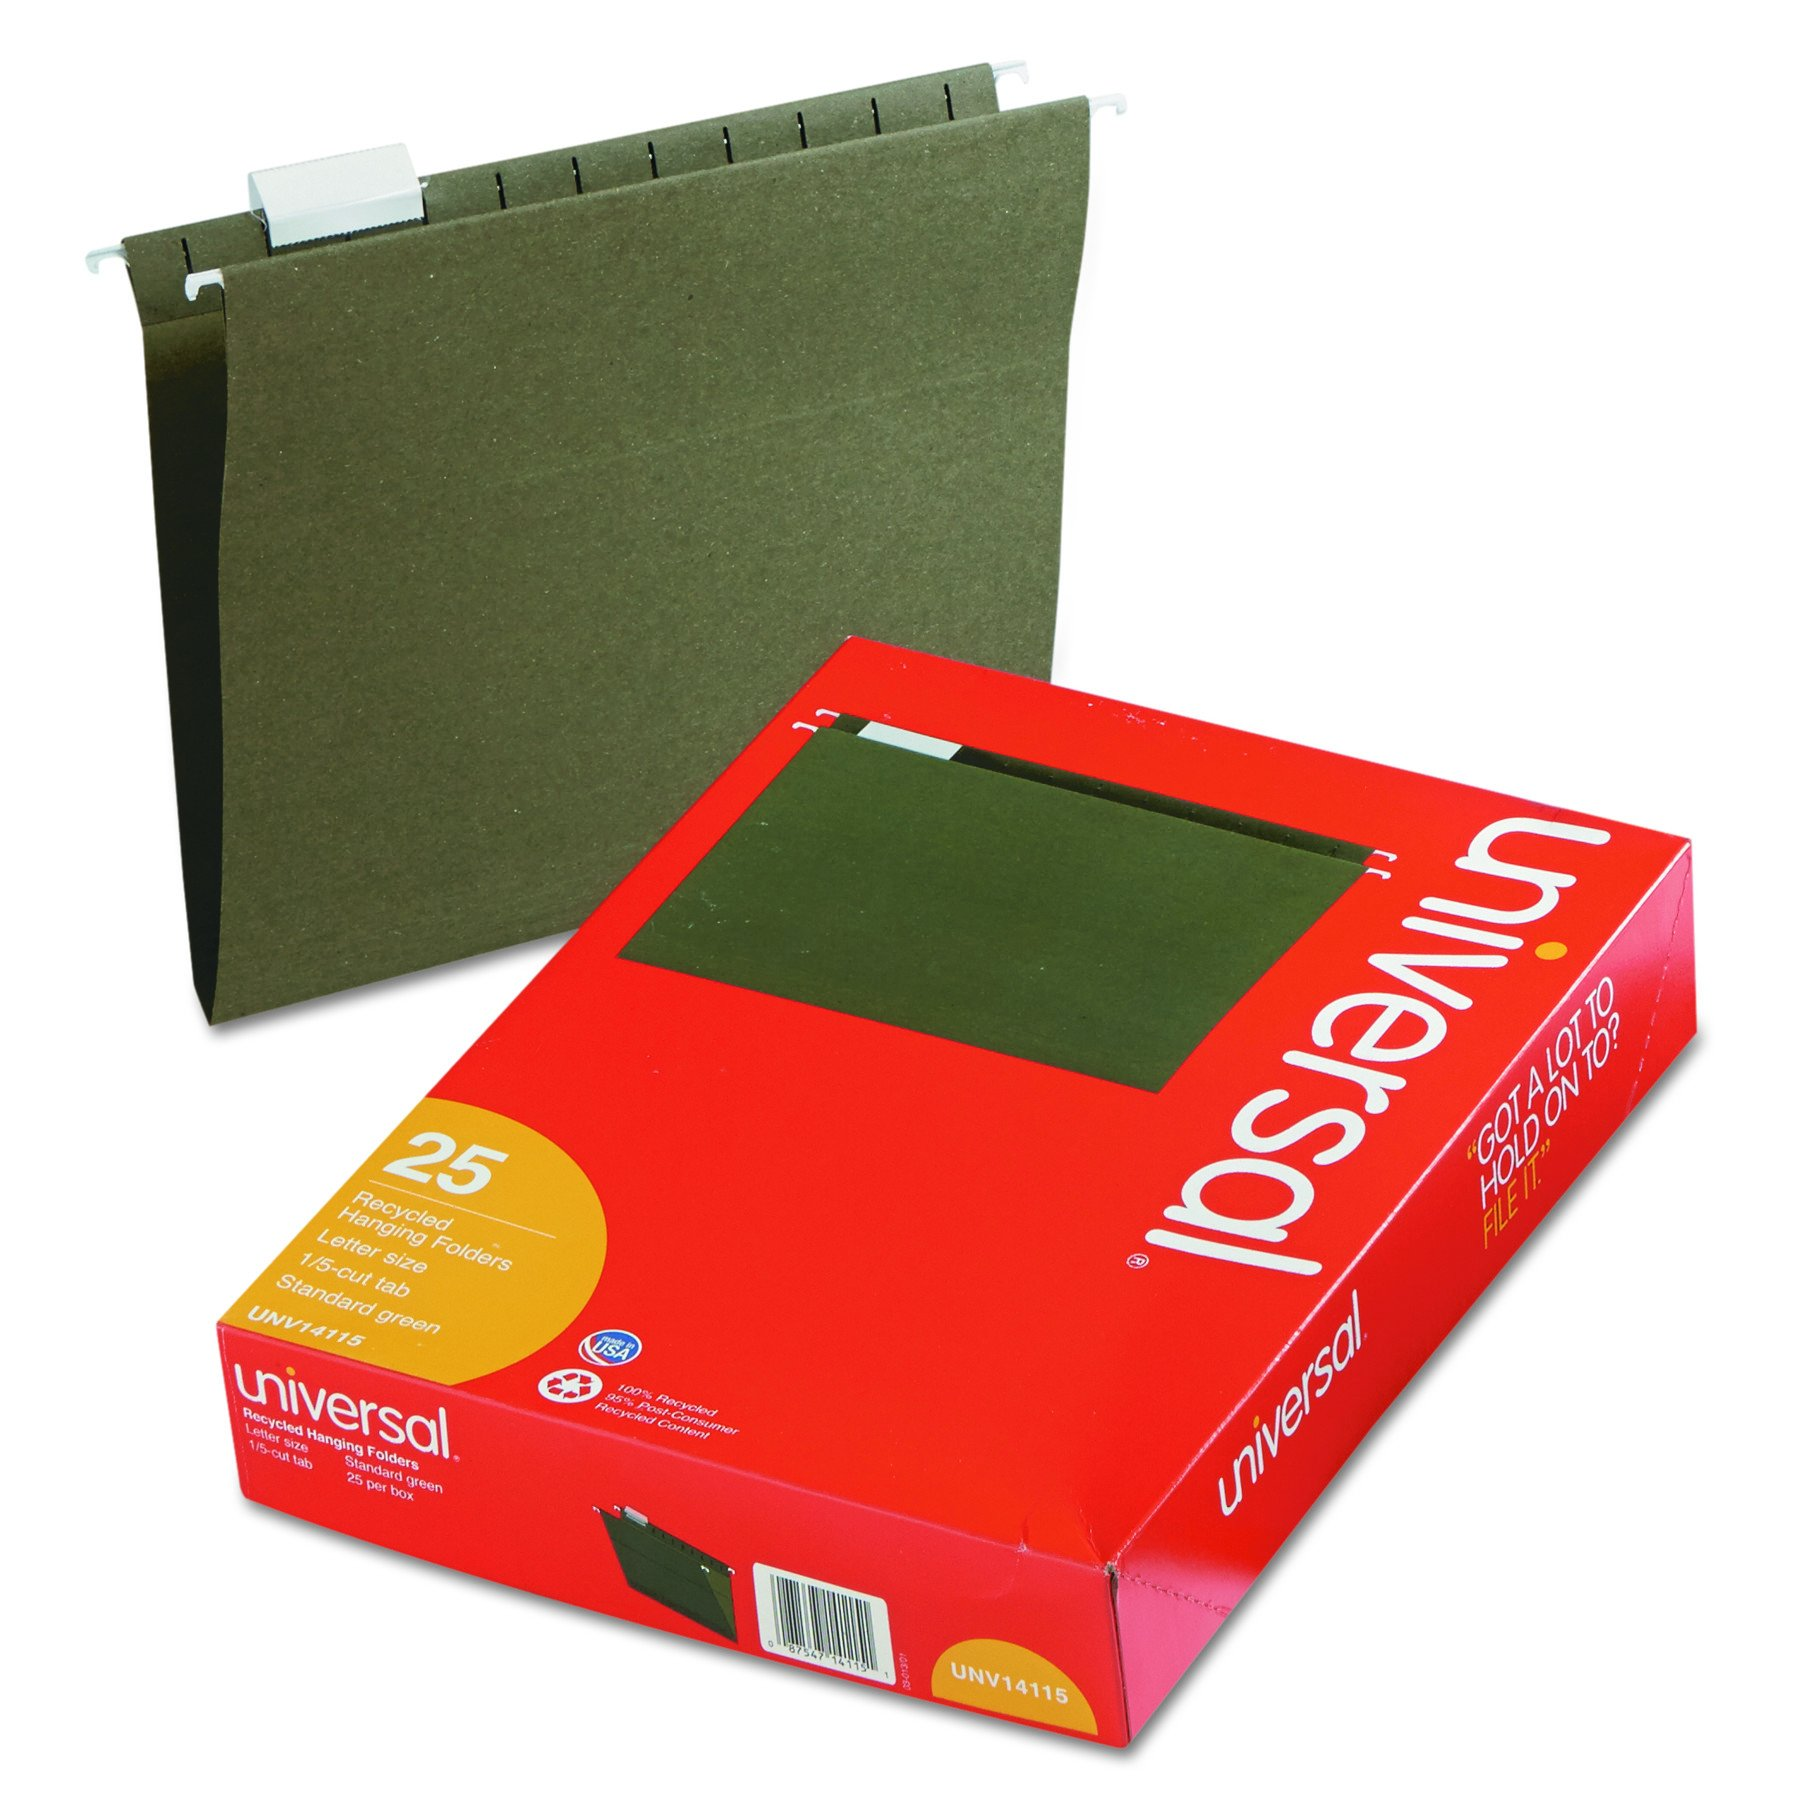 5 Tab Locations 50 Pack Legal Size 1//5 Cut Adjustable tabs Blue Summit Supplies Legal Size Hanging File Folders Legal Size Standard Green Designed for Legal and Law Office File Organization